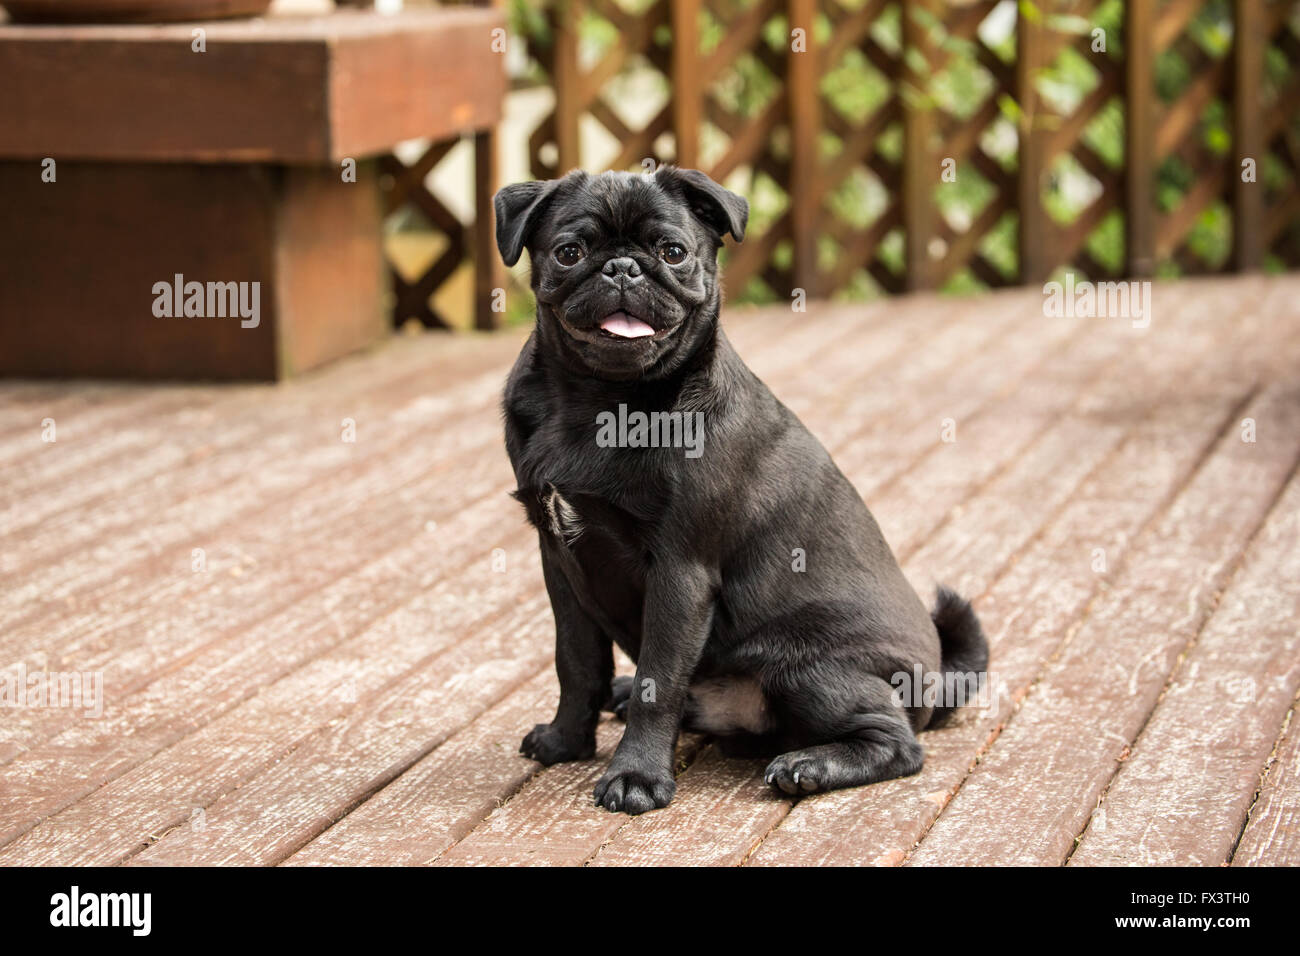 Kato, a black Pug puppy sitting on a cedar deck in Issaquah, Washington, USA - Stock Image